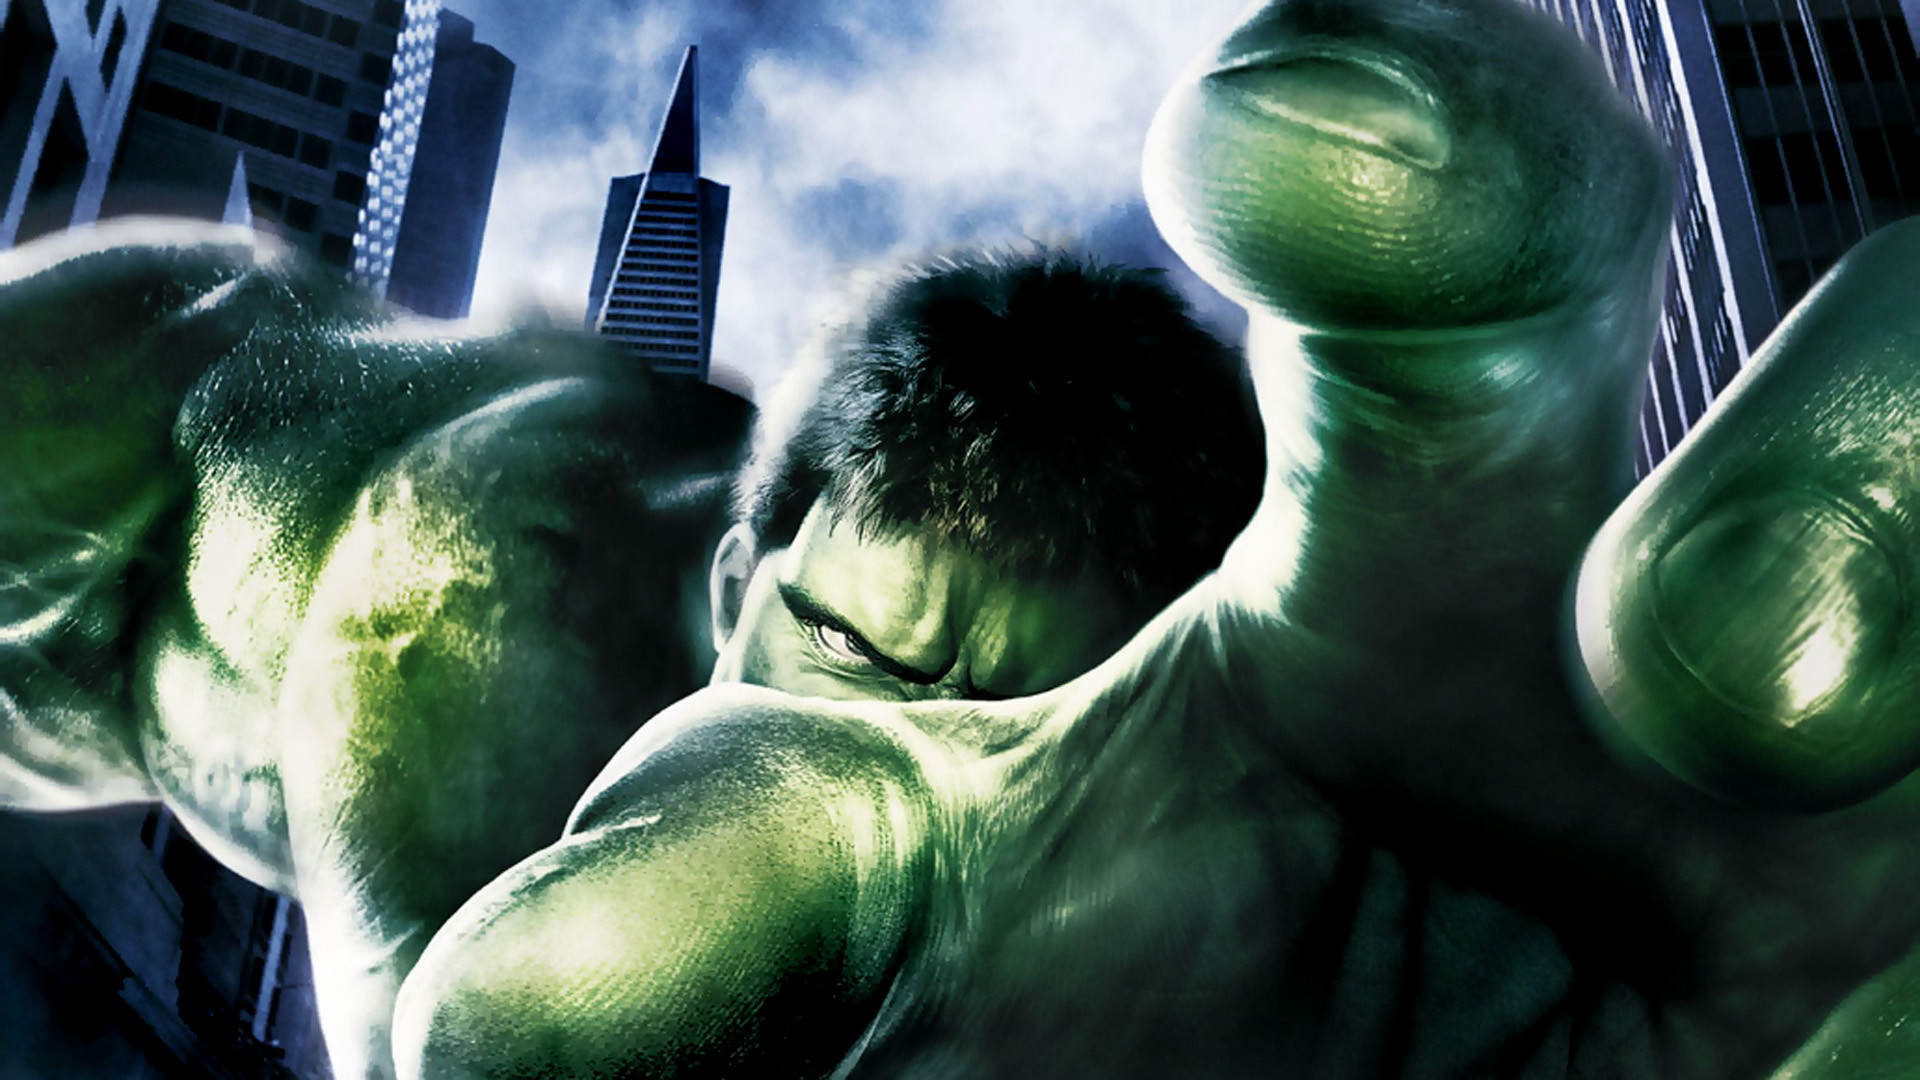 Hd Wallpapers Girl For Mobile Hulk Wallpapers Hd Pixelstalk Net